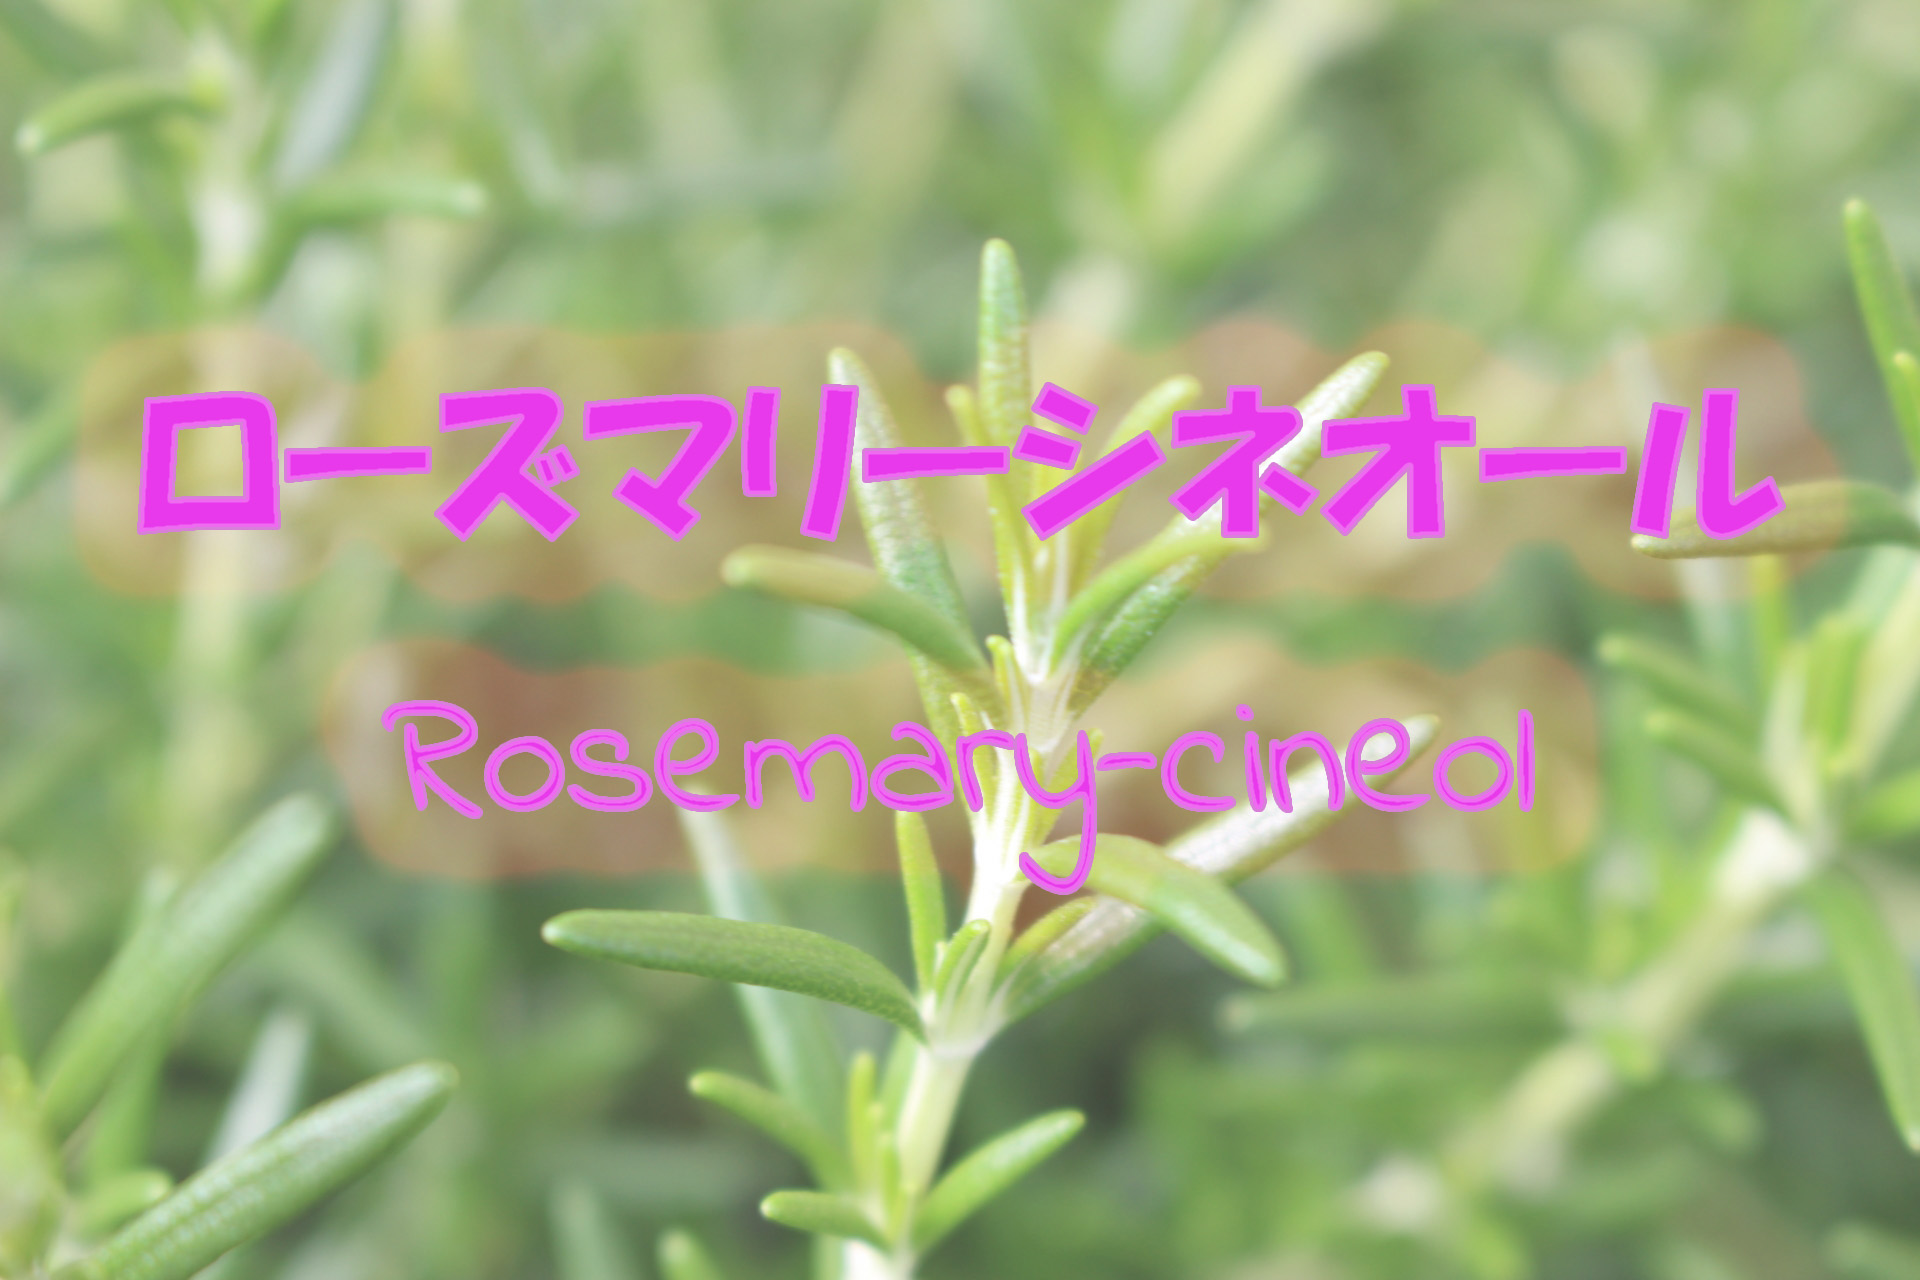 rosemary-cineol_191117